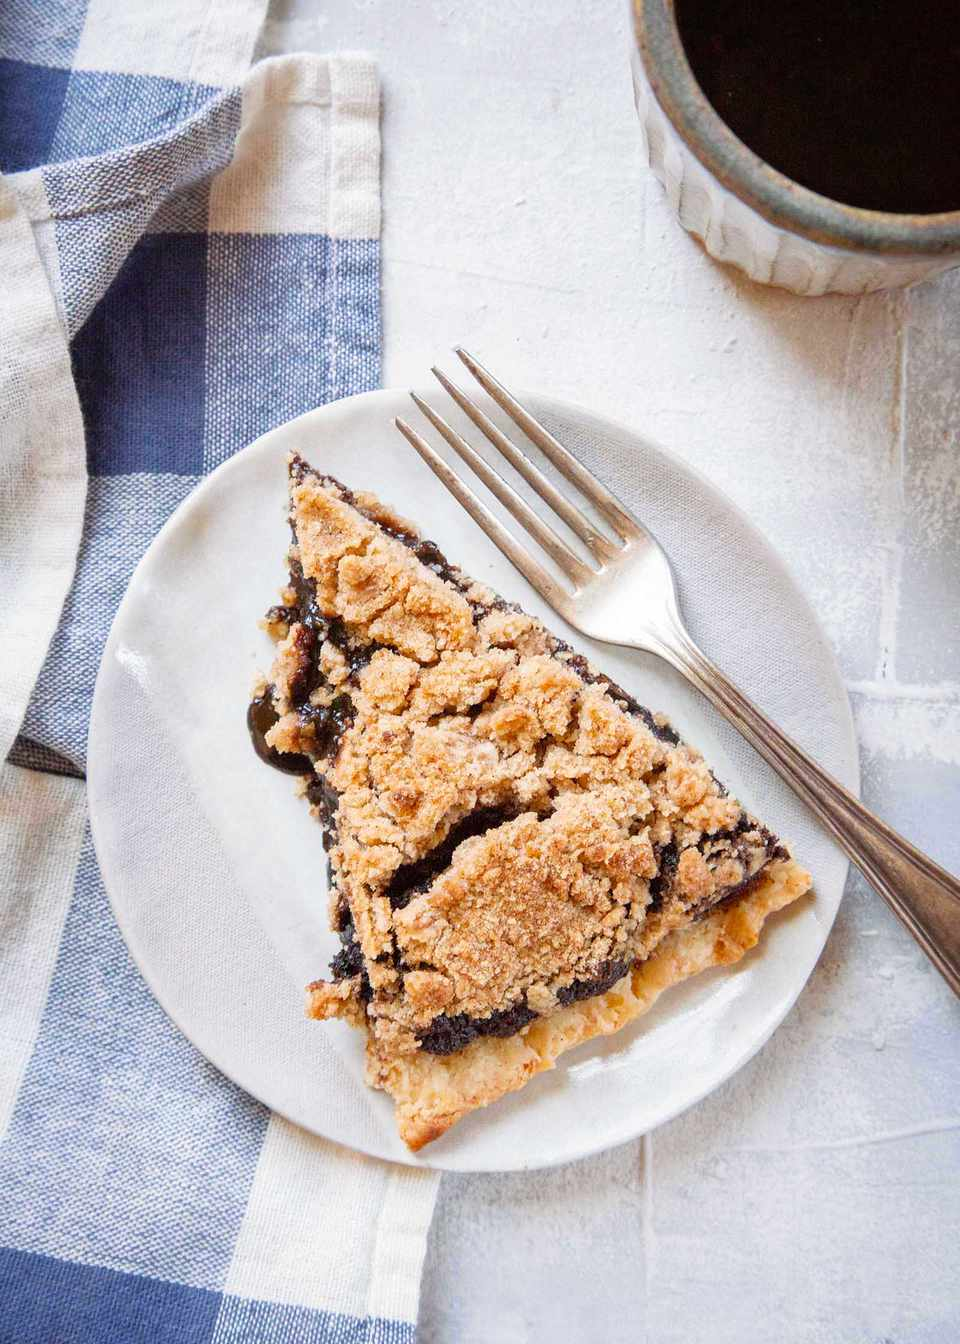 Shoo-fly pie on a white plate with a fork next to it.